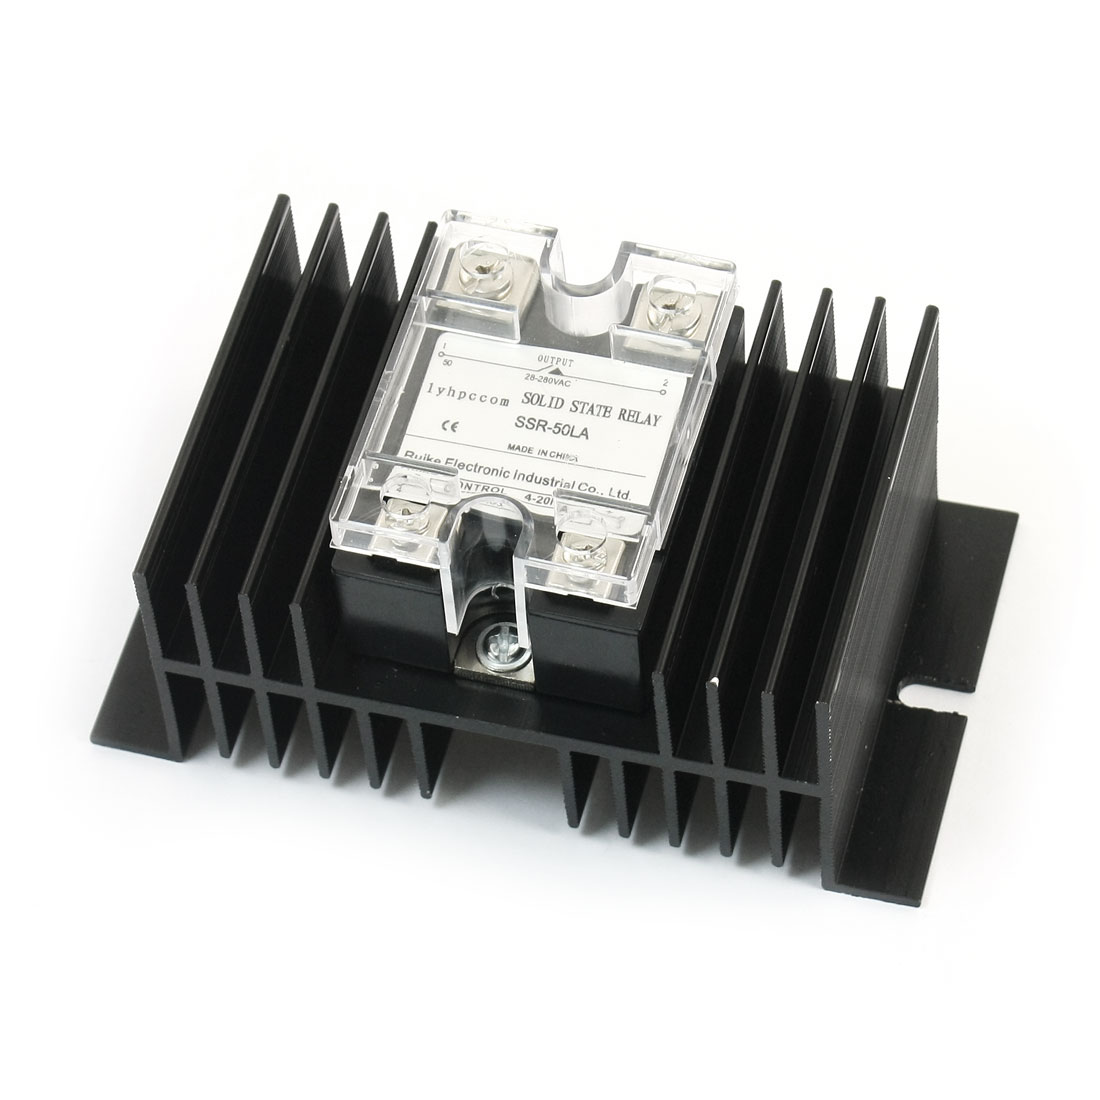 4-20mA to AC28-280V 50A Current Control 4 Screw Terminal Single Phase Black Aluminum Heatsink Solid State Relay